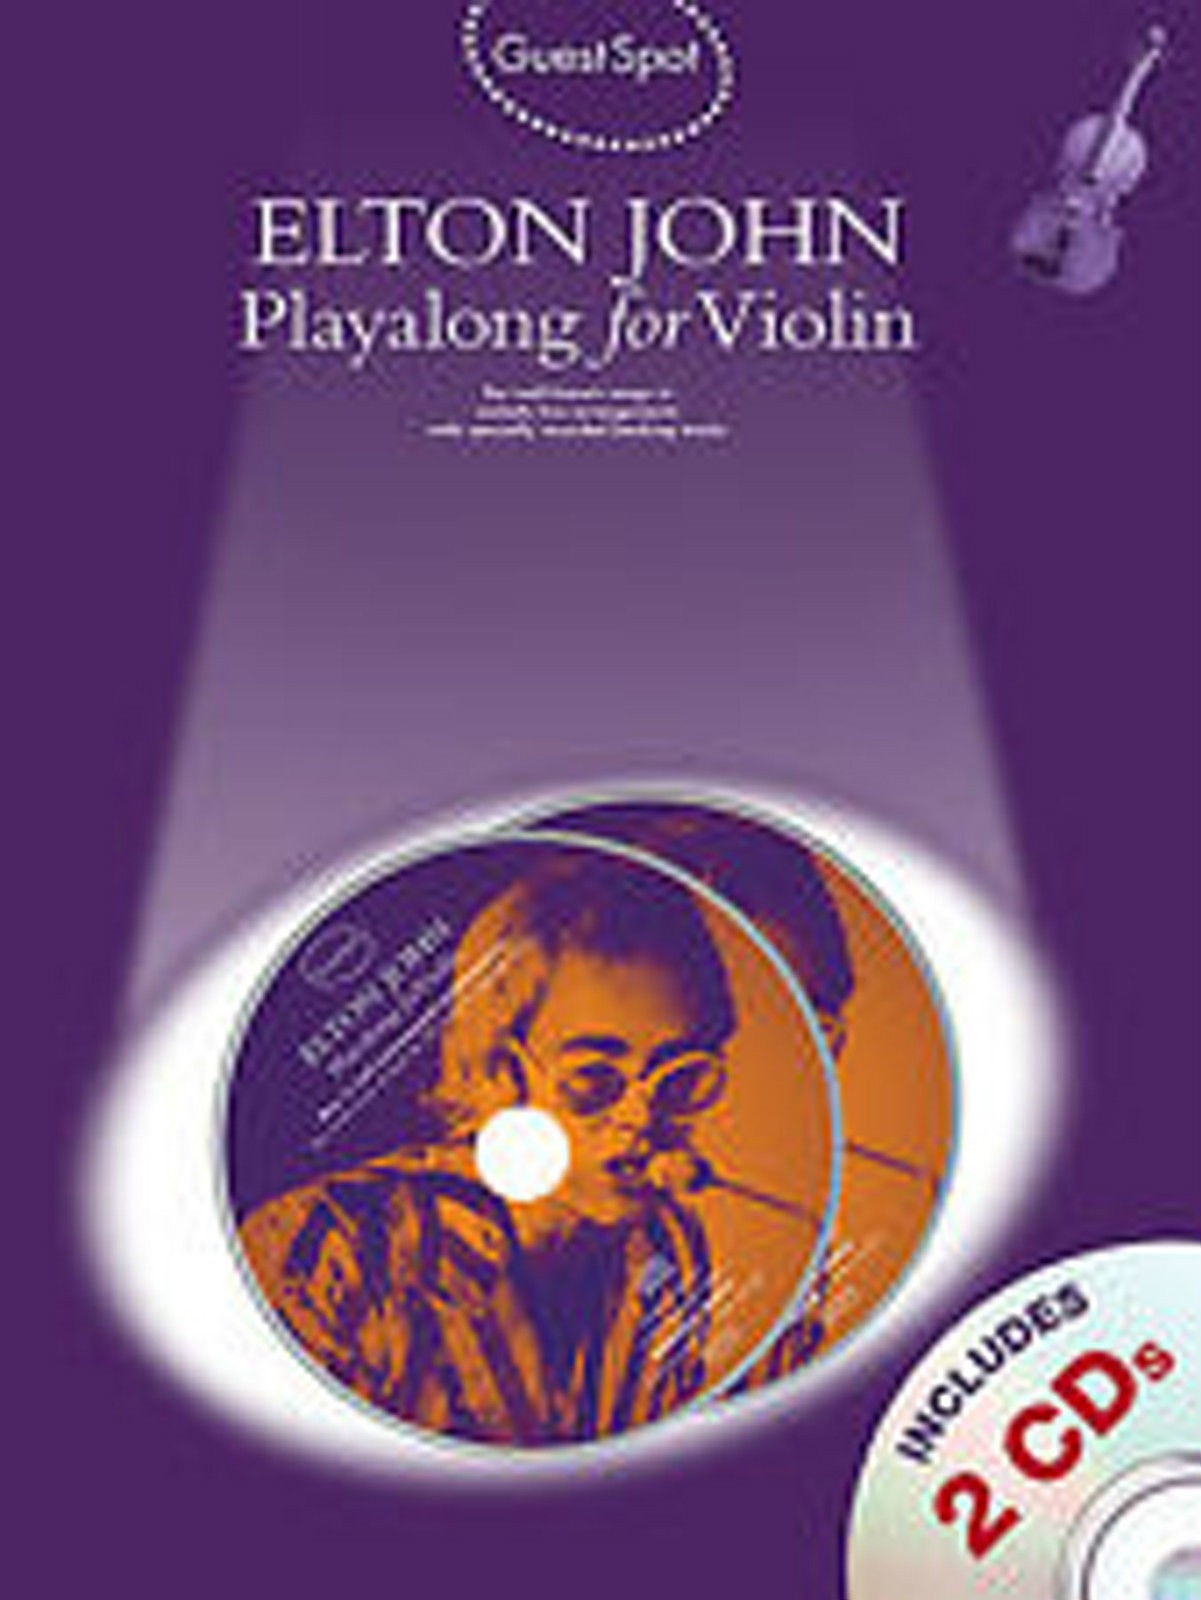 Guest Spot Playalong Violin Elton John Book CD Sheet Music B40